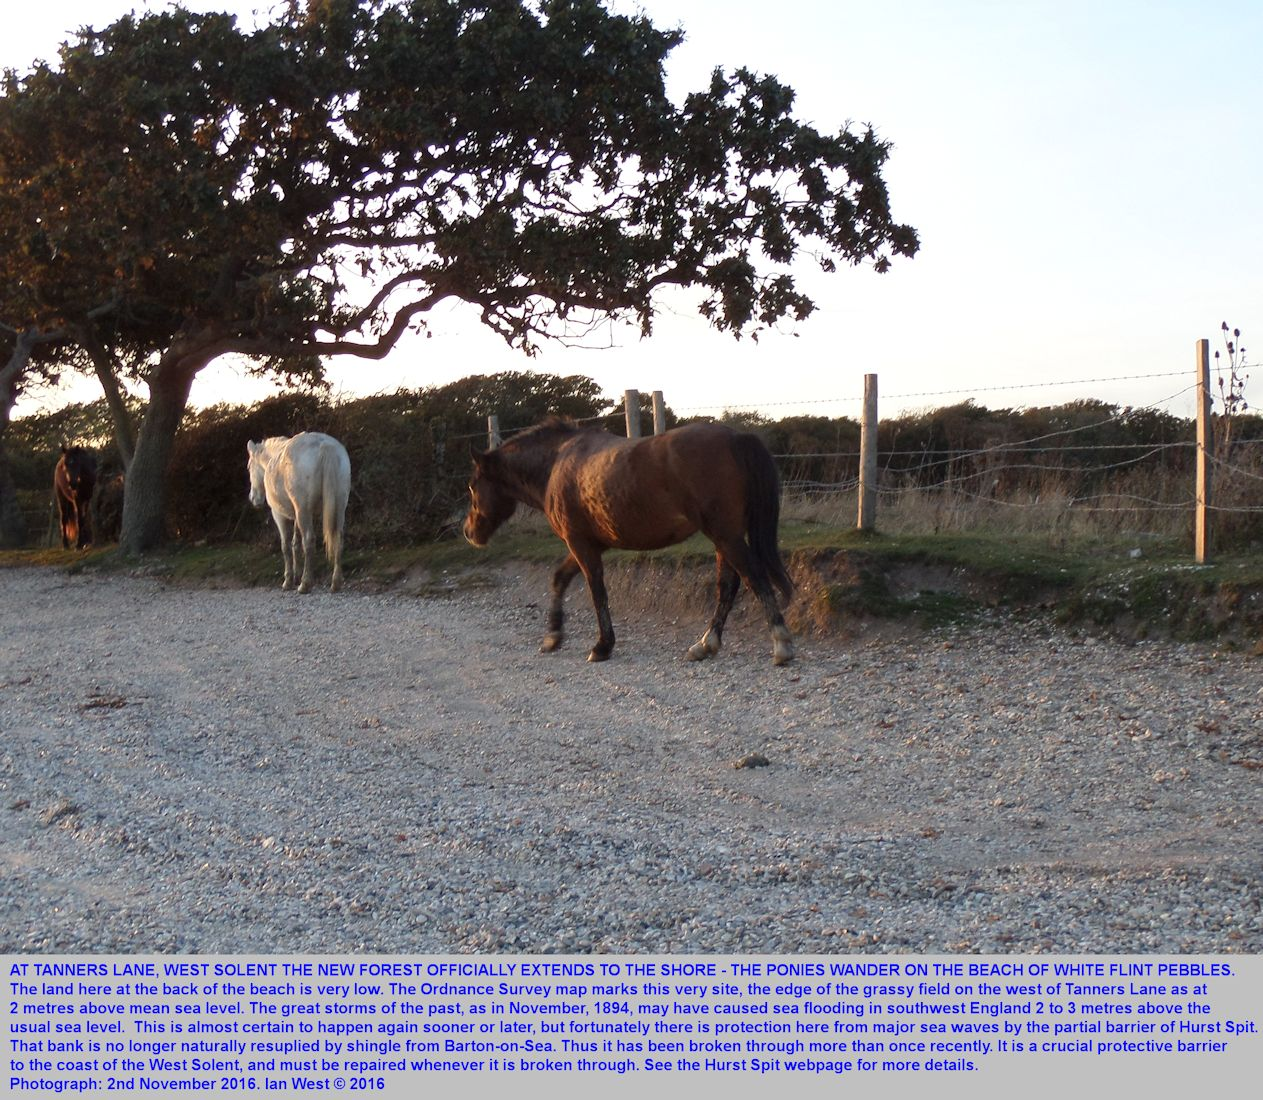 New Forest ponies near and just to the west of the seaward end of Tanners Lane, West Solent, southern England, 2nd November, 2016